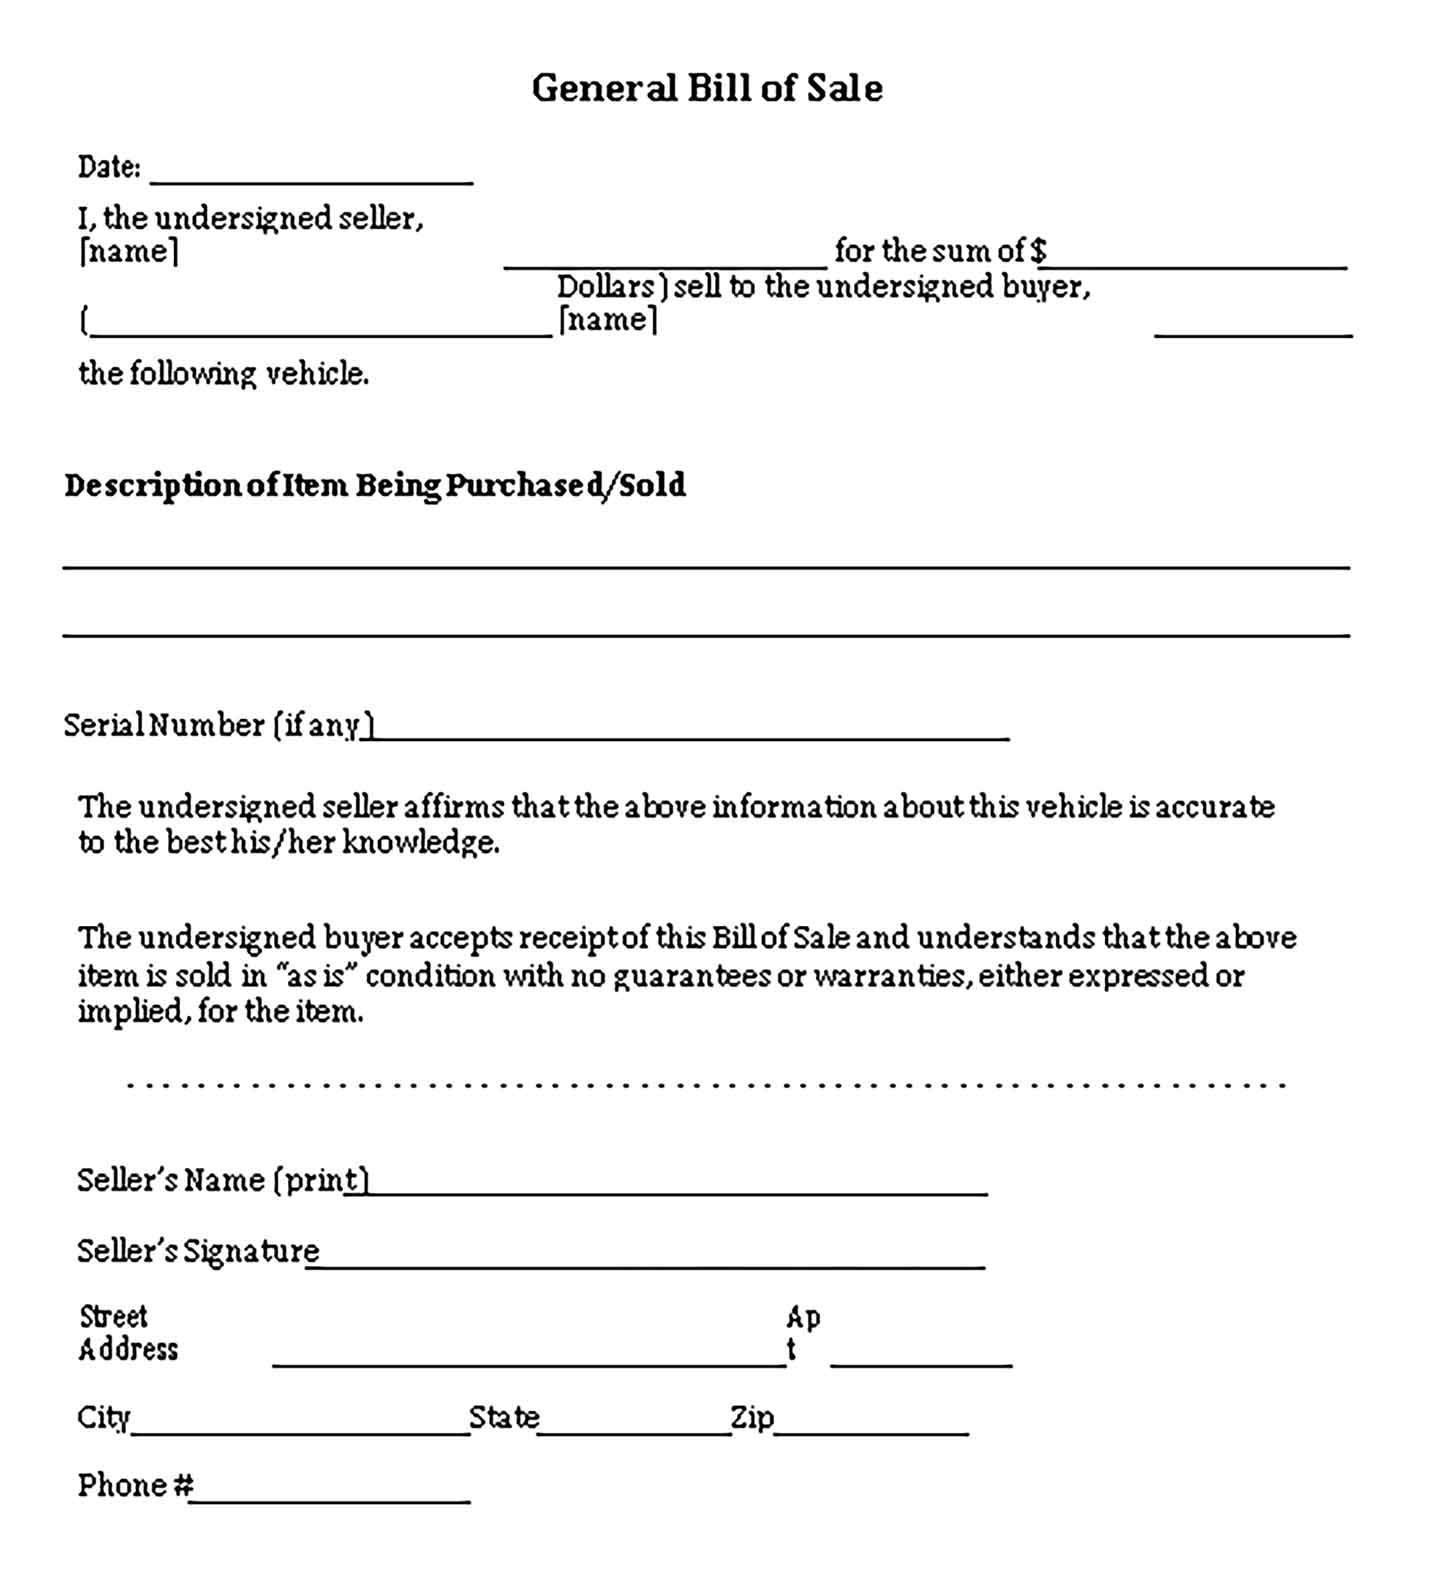 Sample General Vehicle Bill of Sale Templates